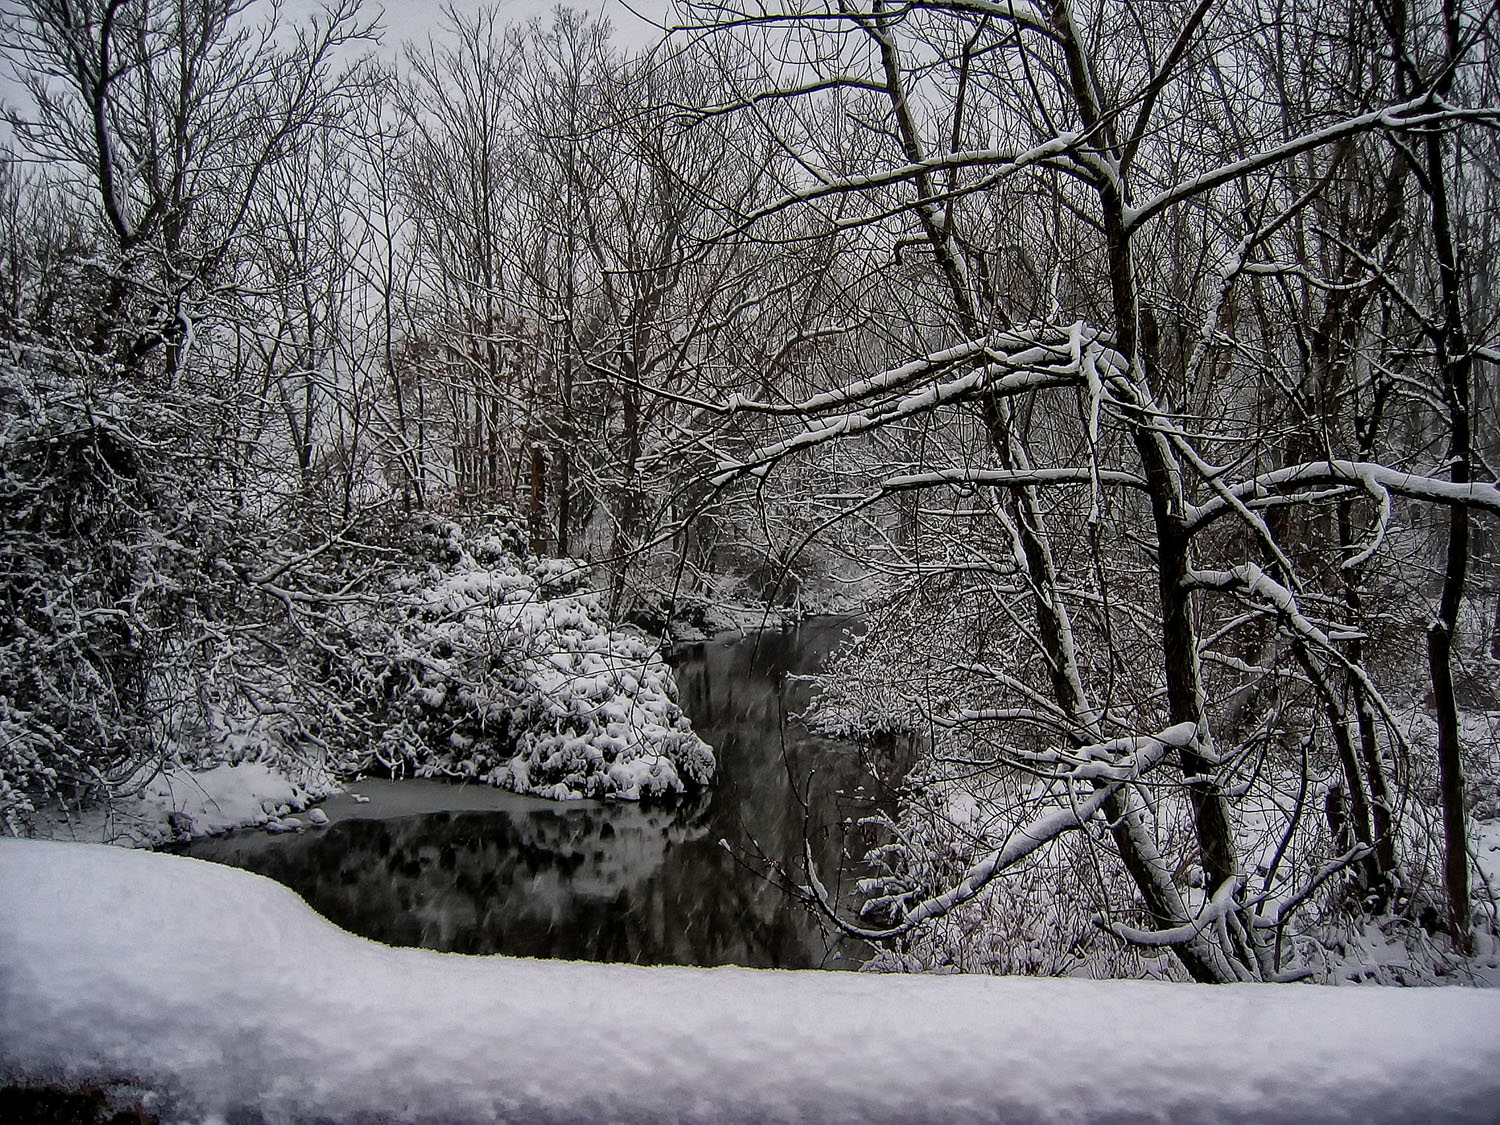 Snow covered the bridge over Haycock Run giving this image a black and white effect.